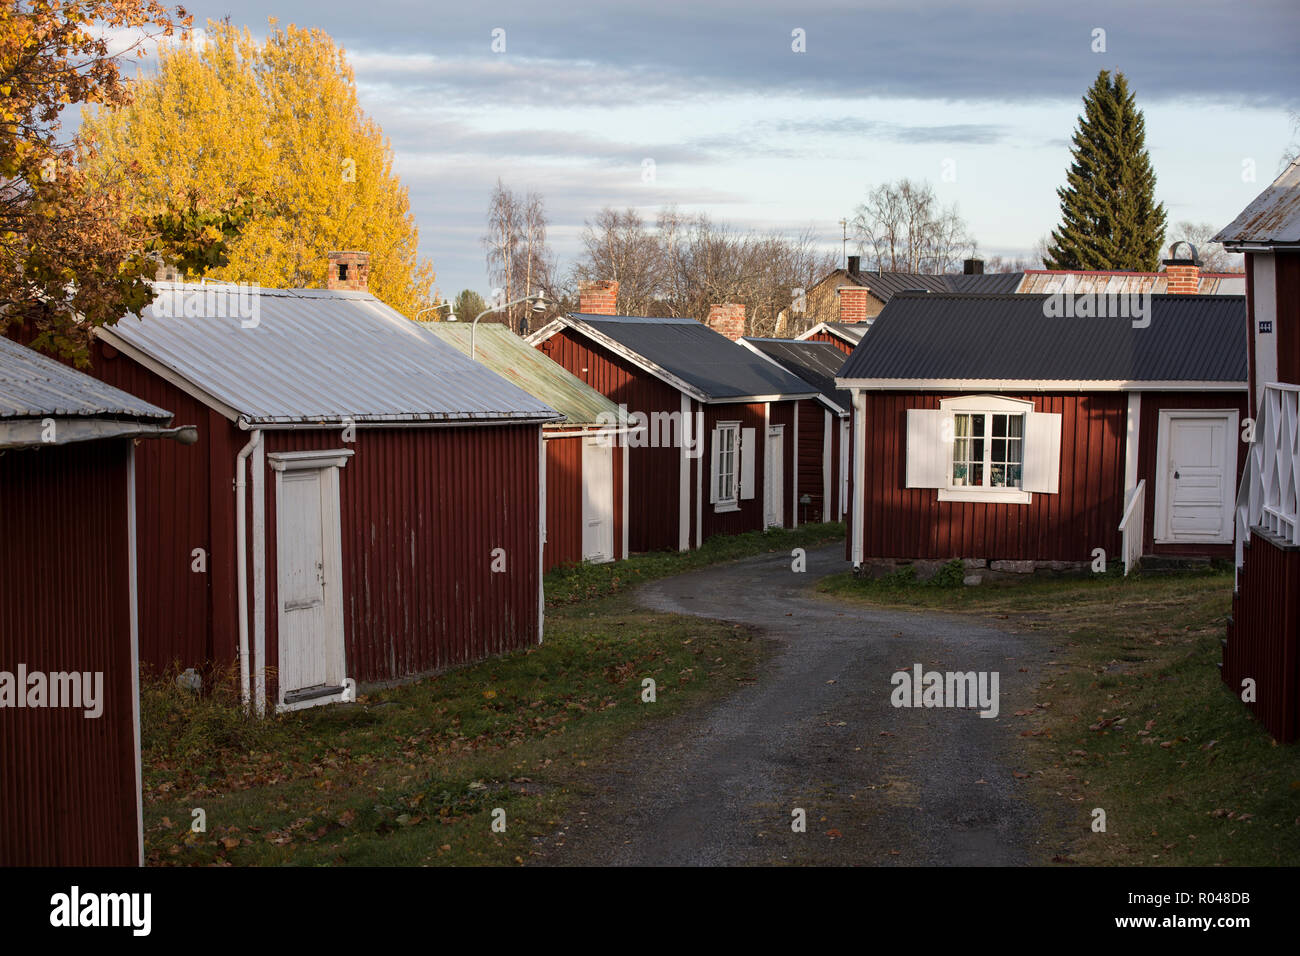 Gammelstad Church Town in Lulea in Swedish Lapland, listed as a Unesco World Heritage centre, Northern Sweden, Scandinavia - Stock Image